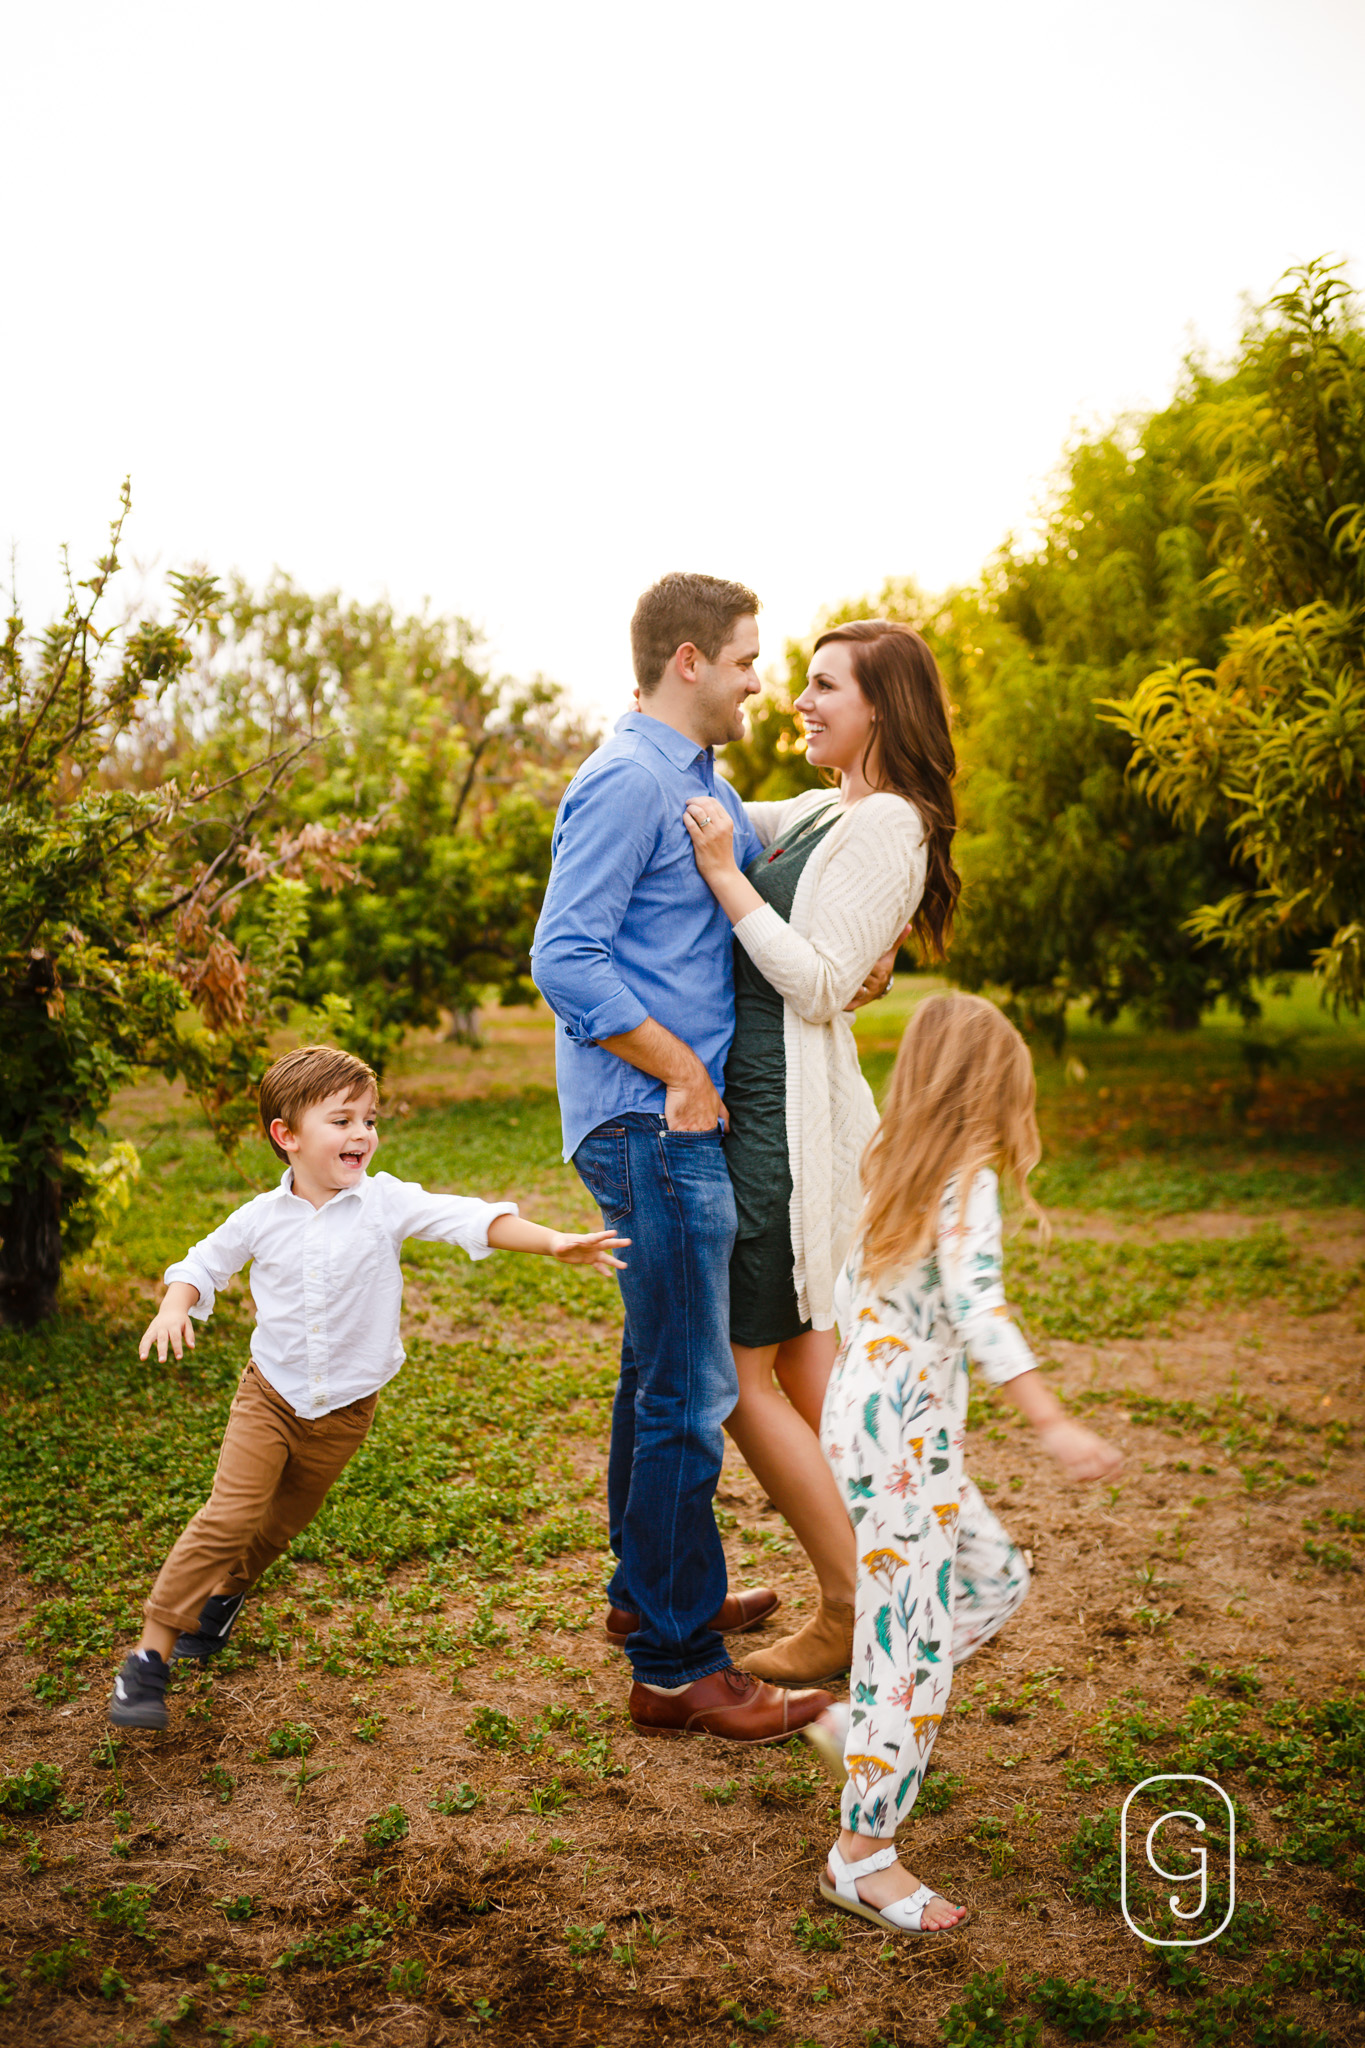 JulieGriffinPhotography_blog_JohnstonFamily-Sept2017_041.jpg